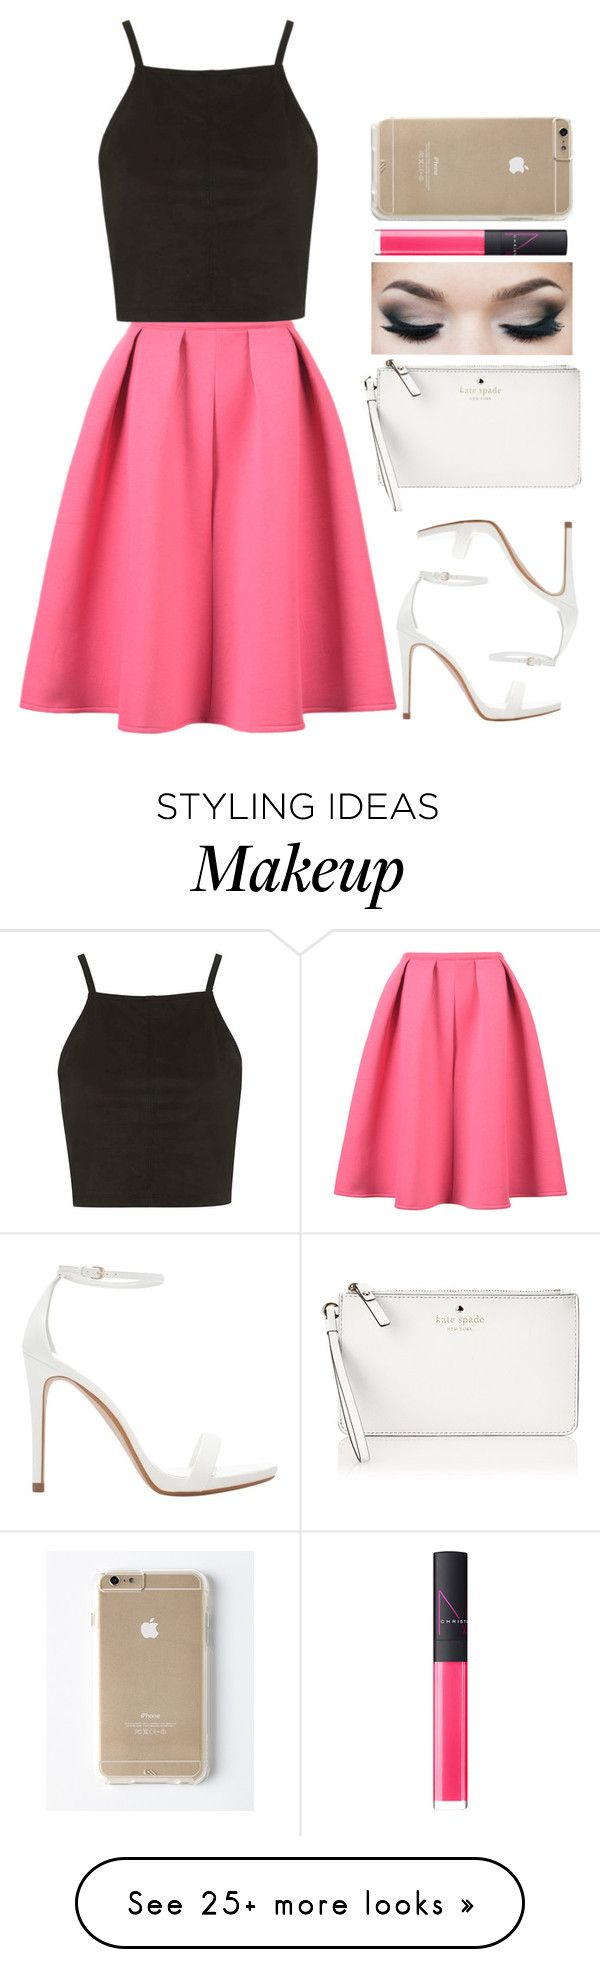 """"""""""" by meljordrum on Polyvore featuring Zara, Topshop, NARS Cosmetics and Kate Spade"""